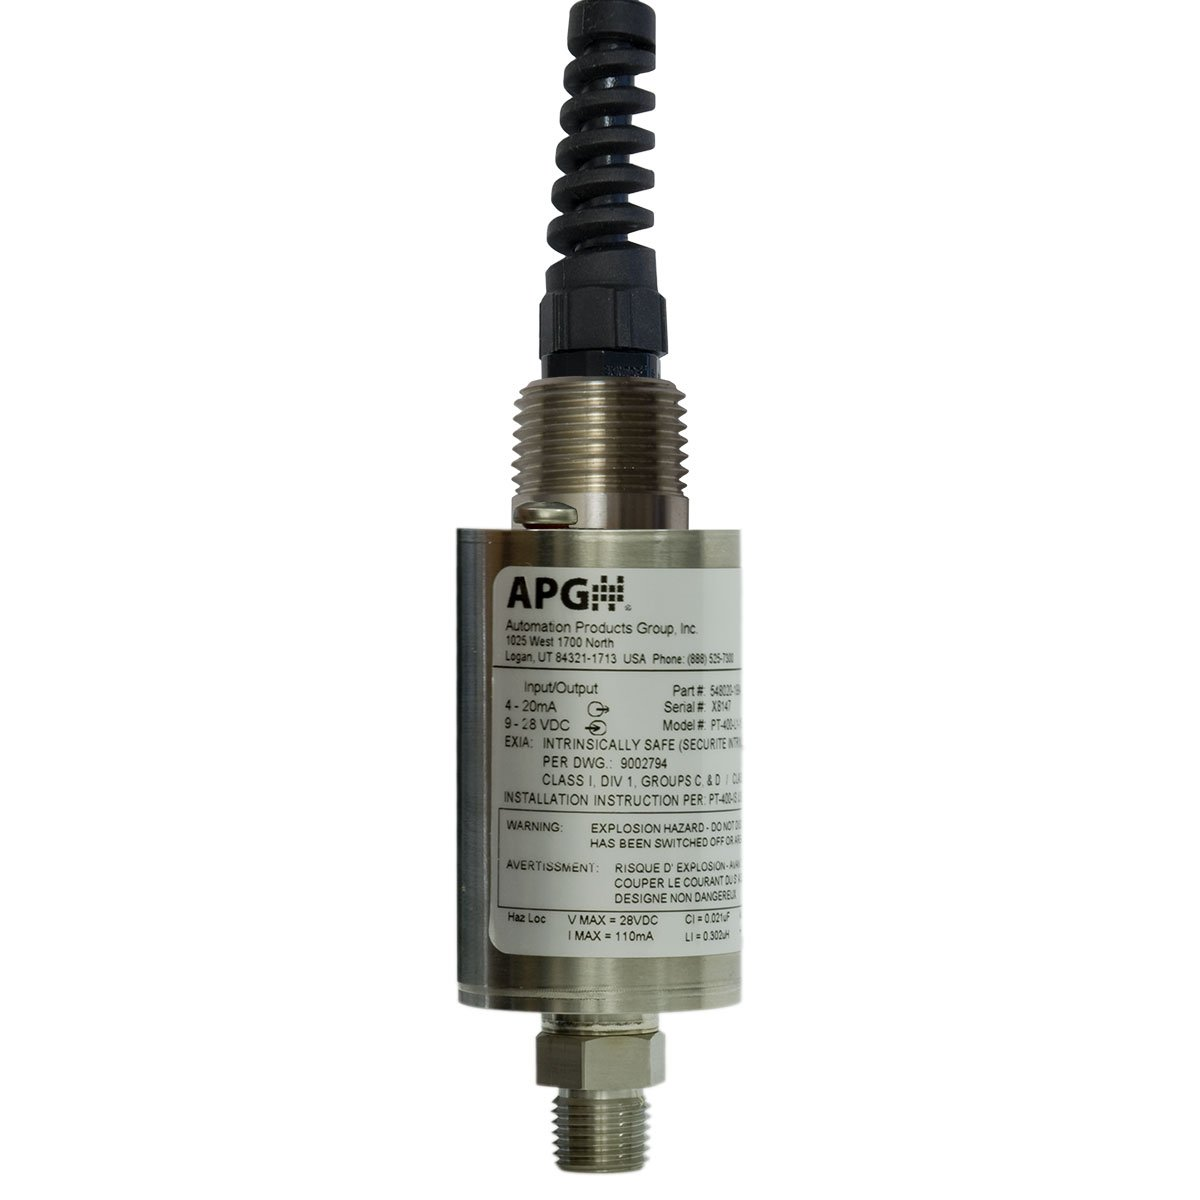 //-1Pct Dwyer Instruments Pressure Transducer 0 to 50 PSI